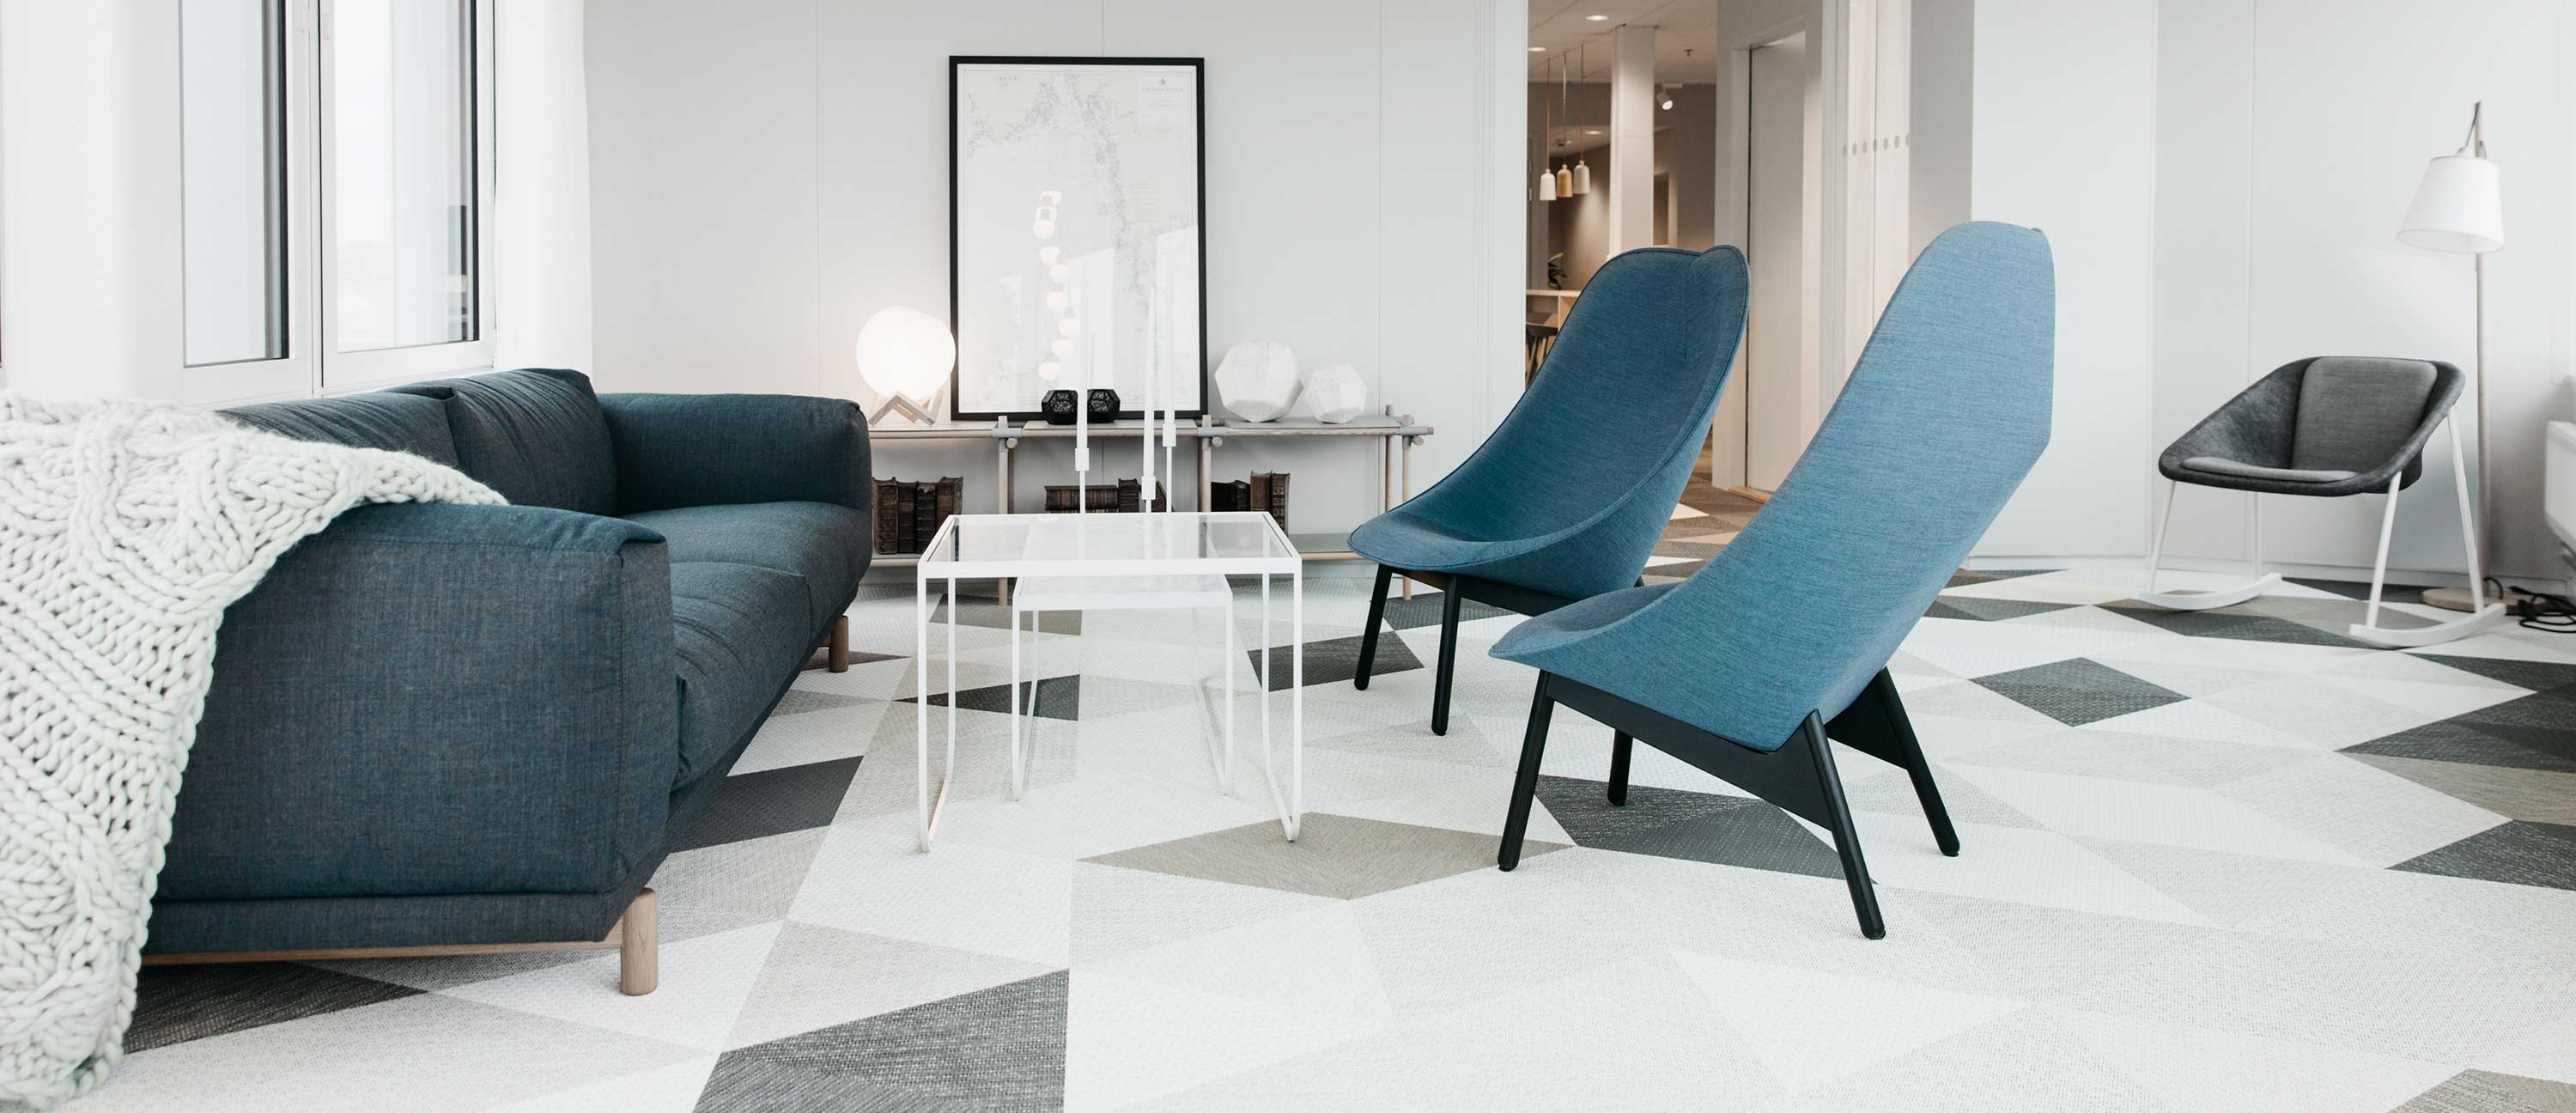 Bolon News Bolon Brings Sustainable Flooring To